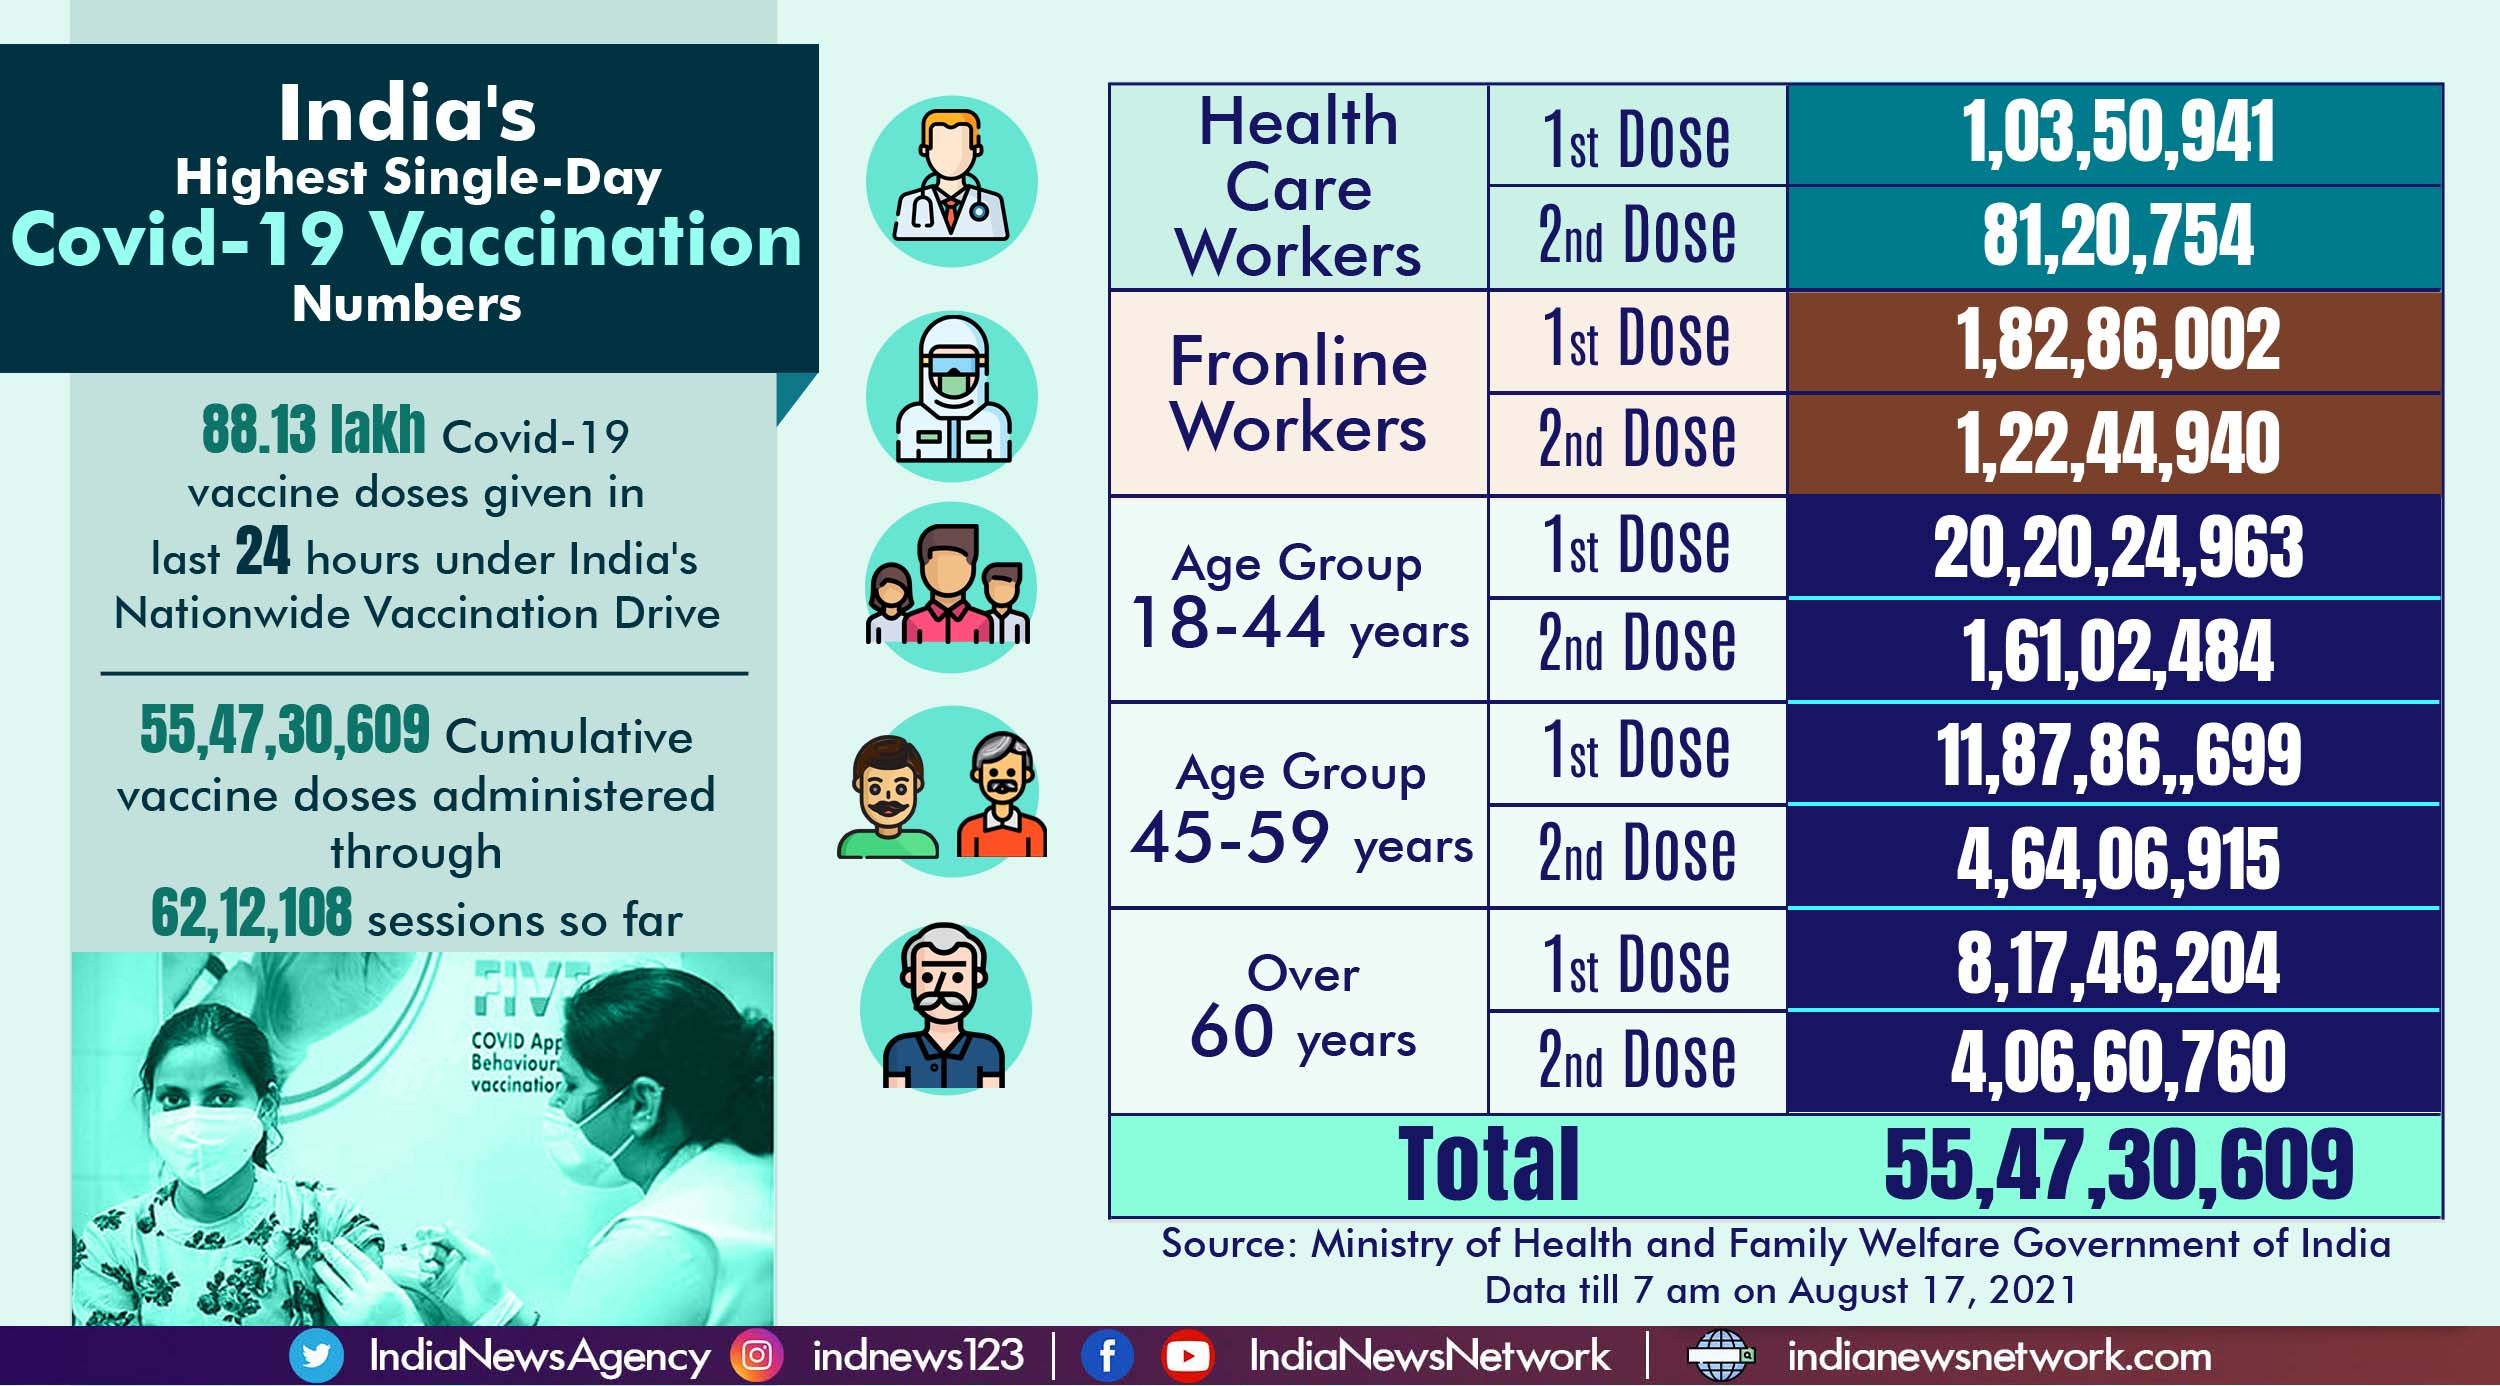 India's Covid-19 vaccination campaign sees record single-day numbers